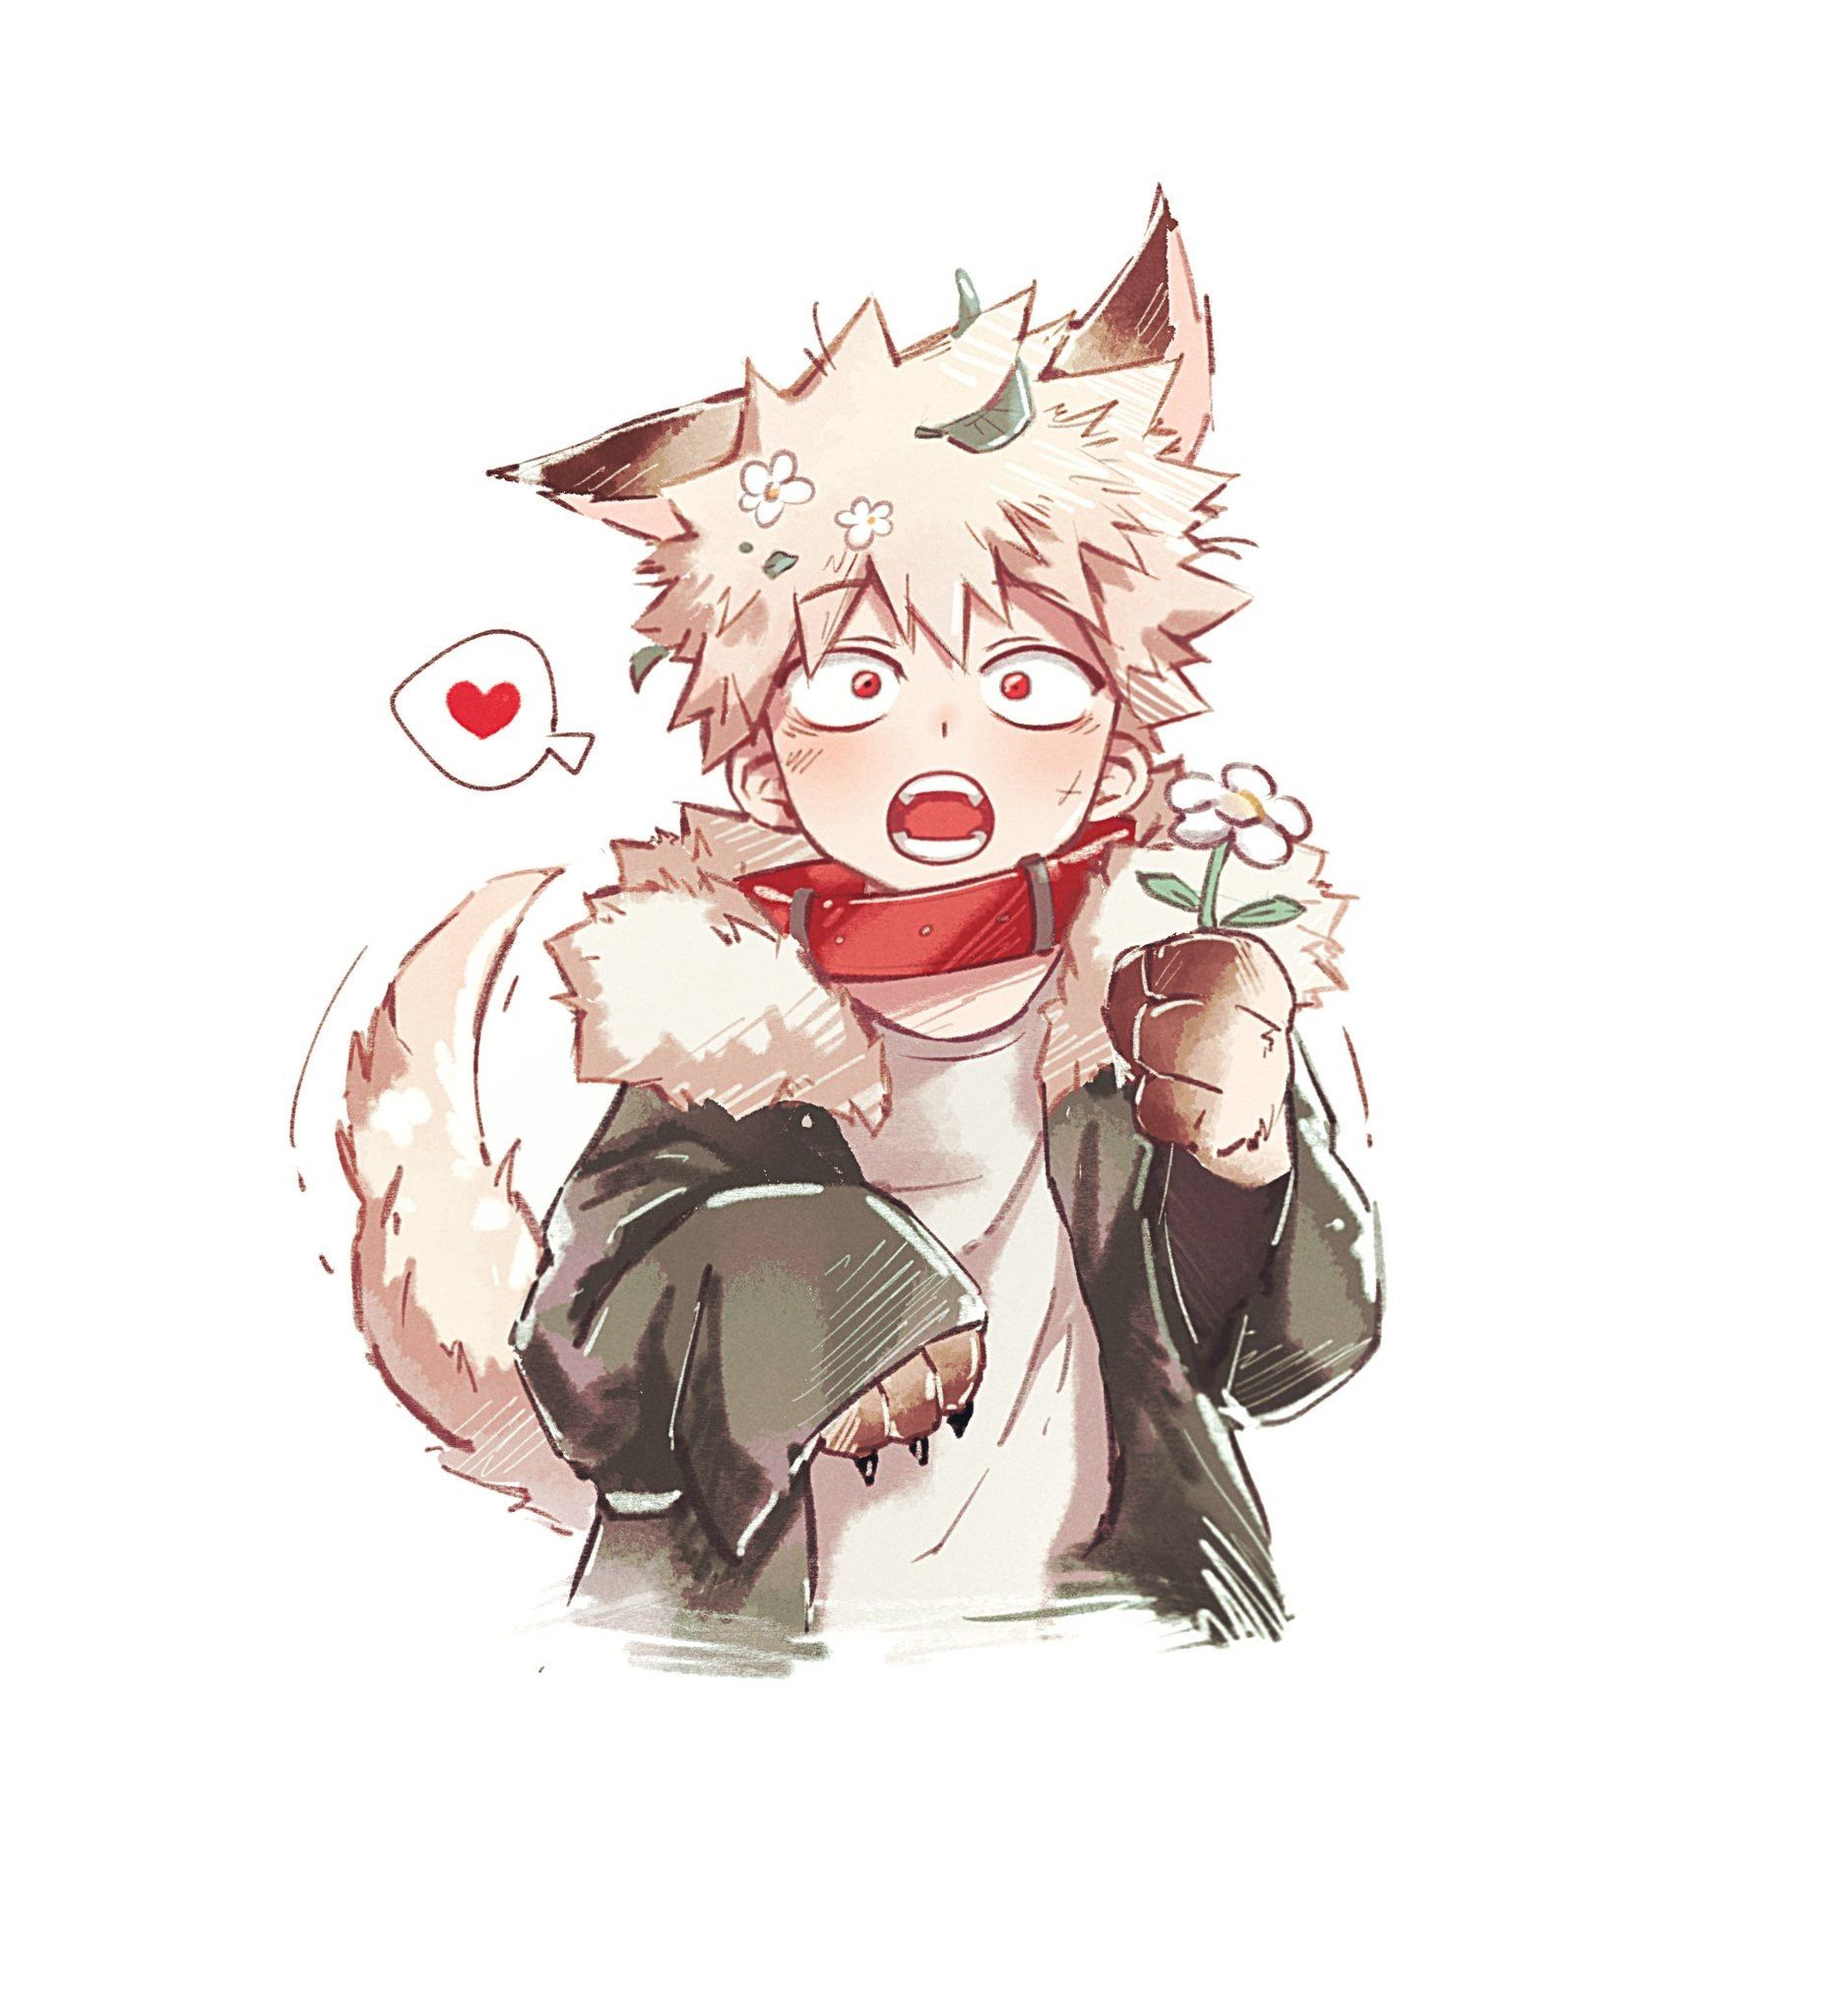 Pin By Pun ţey On Bakugou My Hero Hero Wallpaper Anime